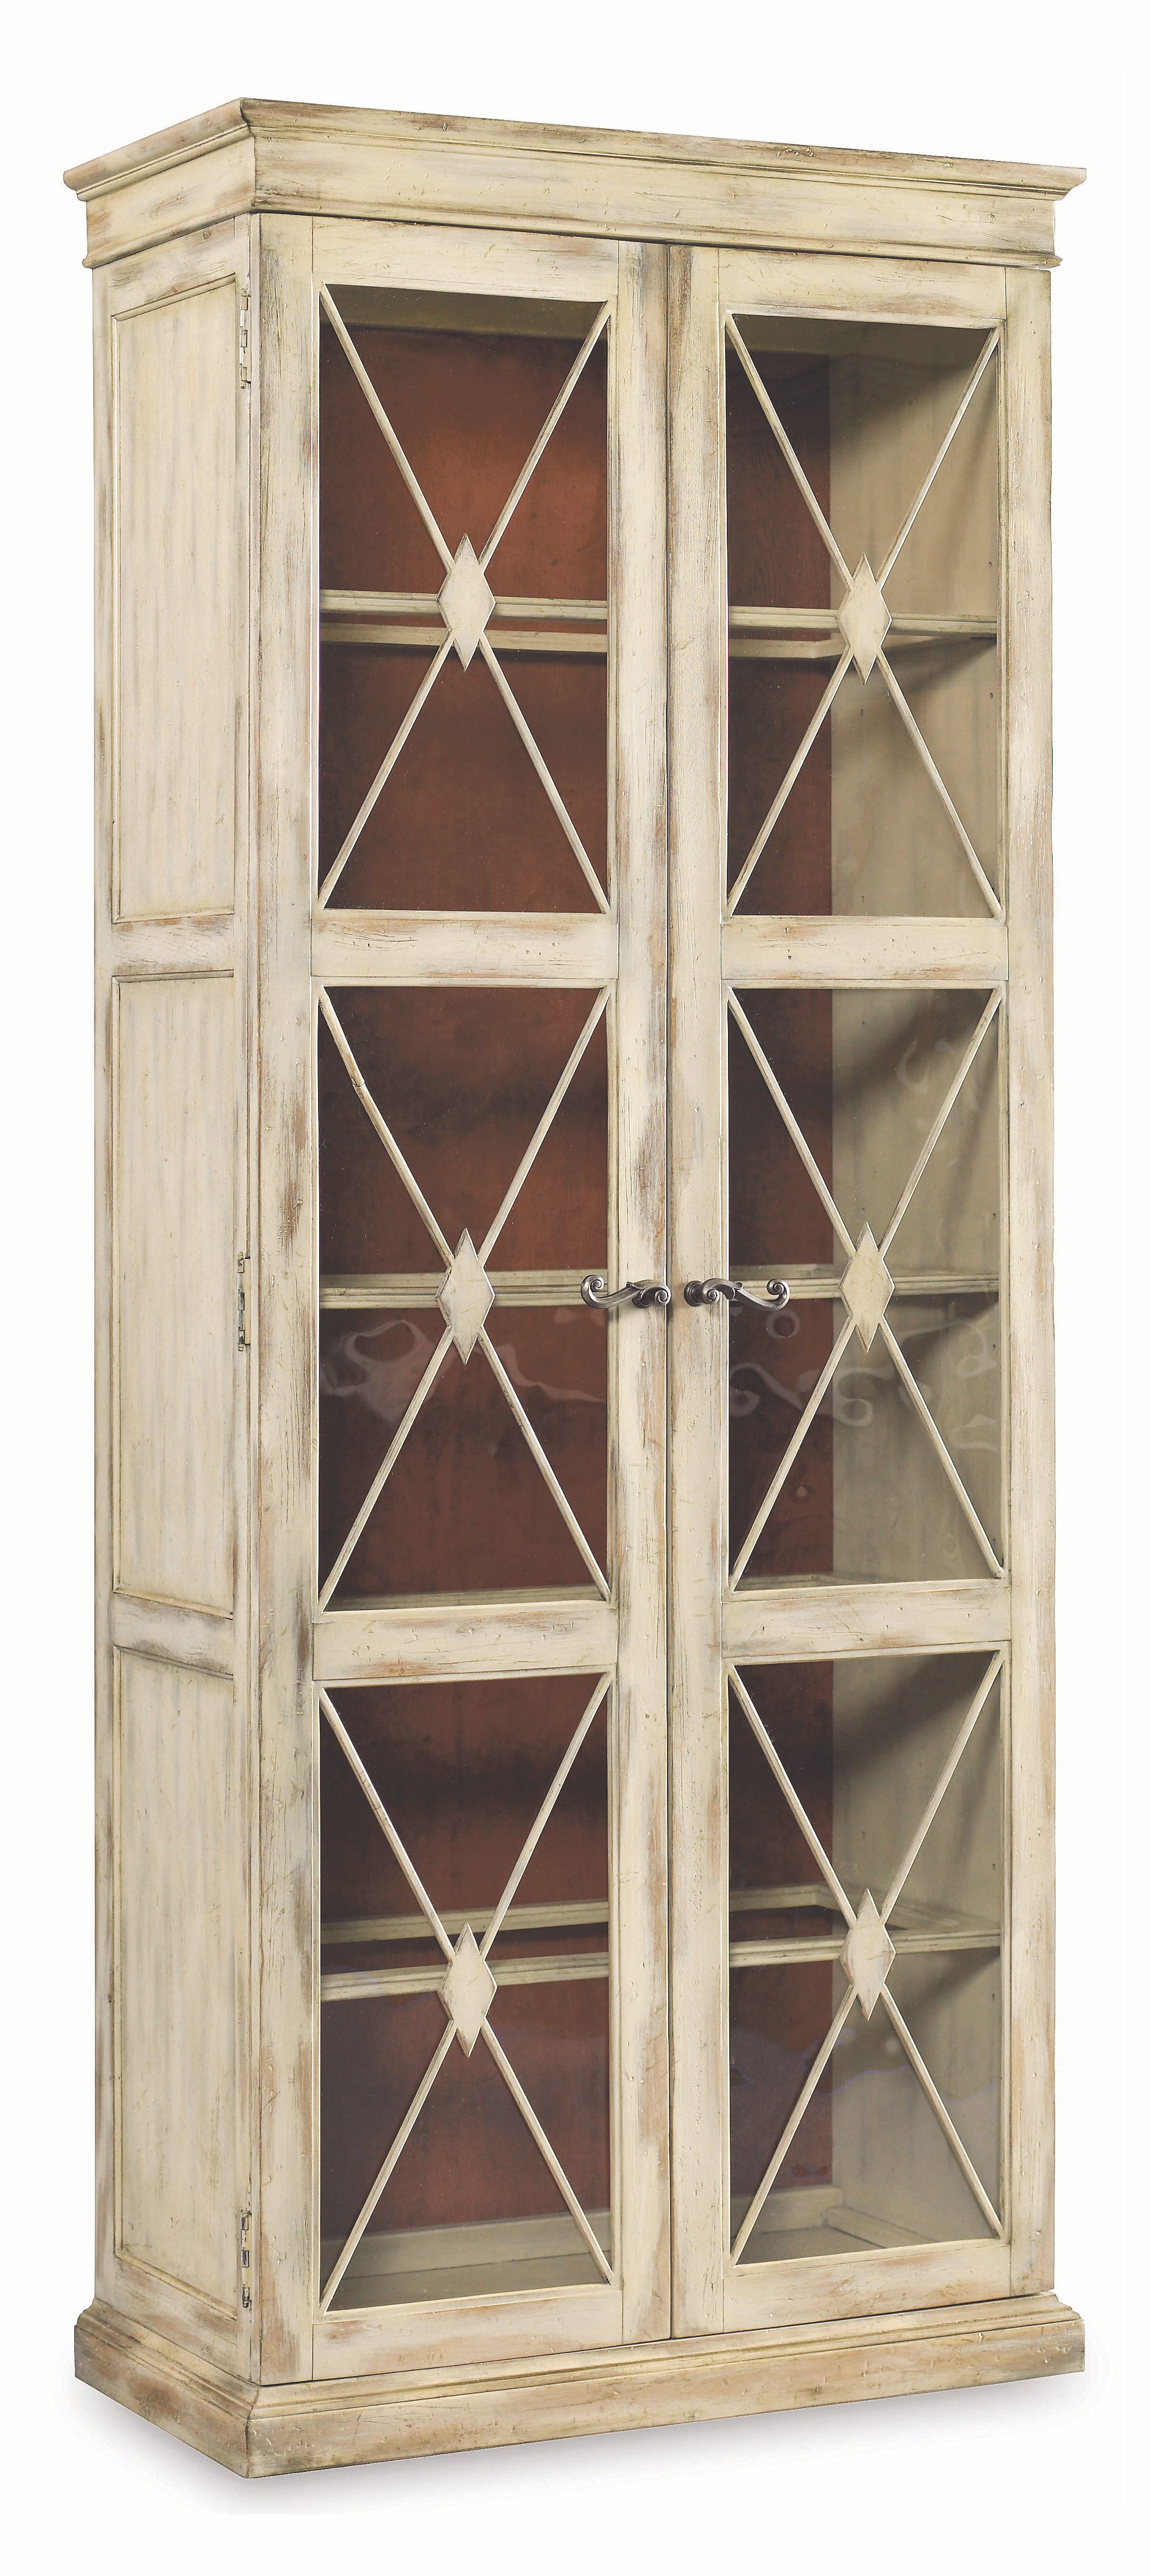 This two-door display cabinet, crafted of hardwood solids and oak veneers, offers a French country feel in any space.